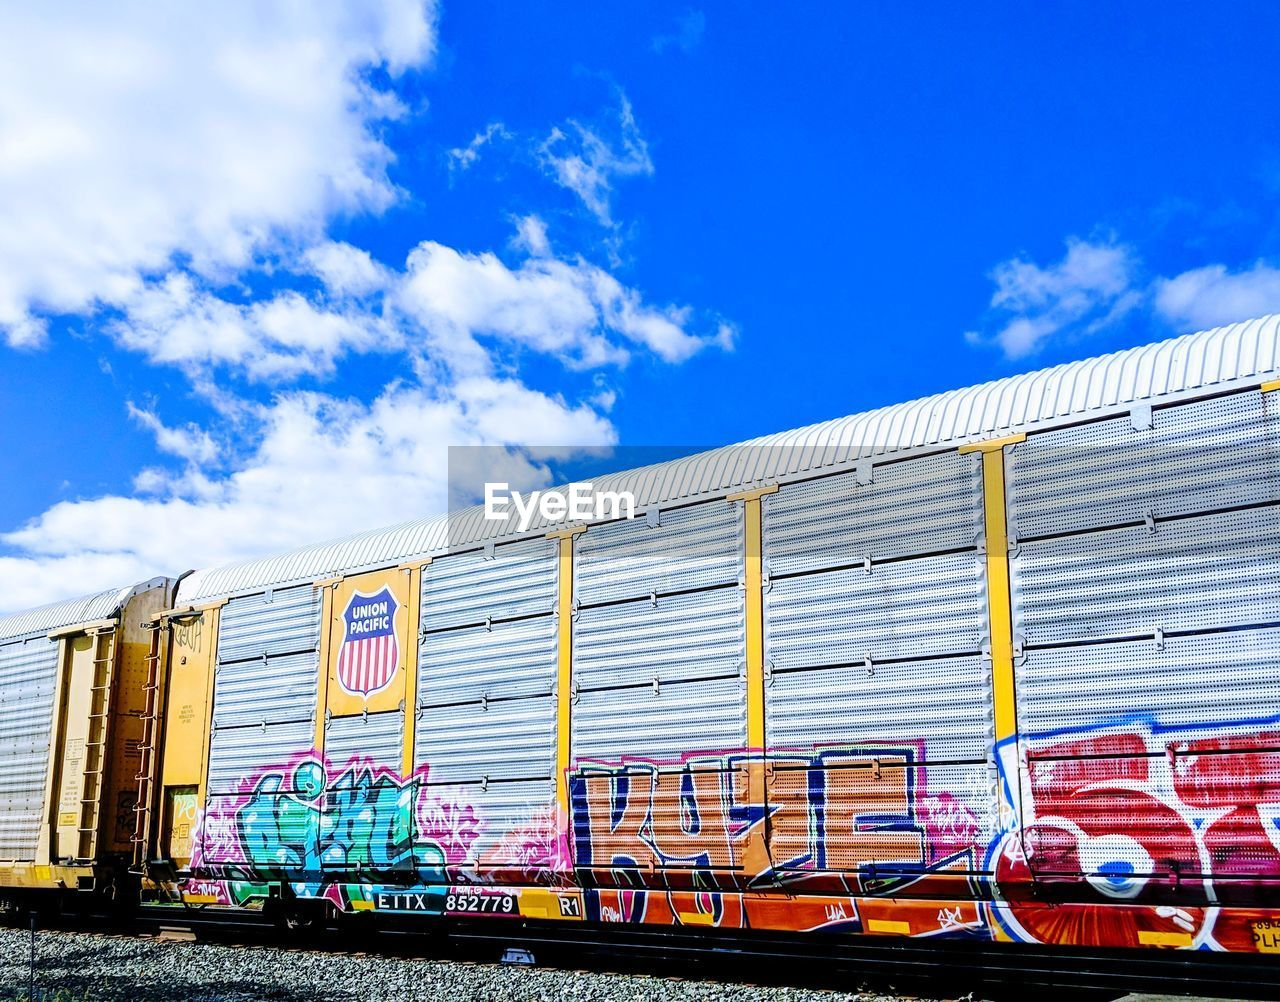 GRAFFITI ON TRAIN AGAINST BLUE SKY AND CLOUDS